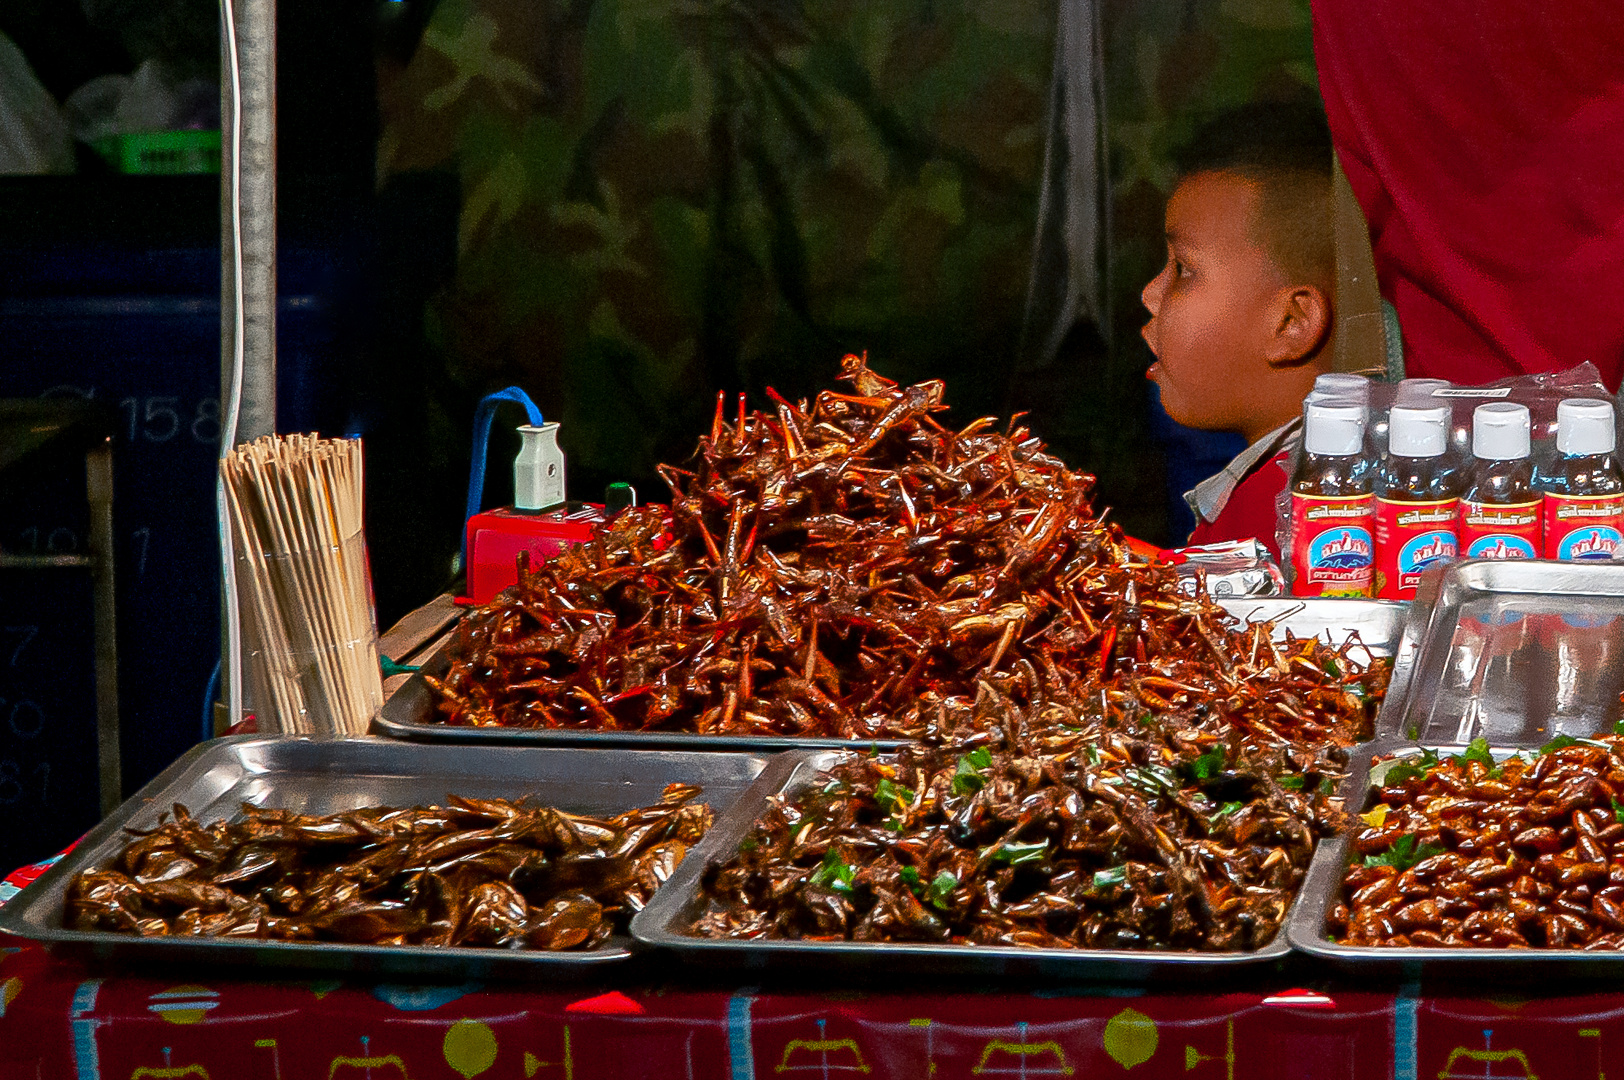 Roasted insects sold for dinner